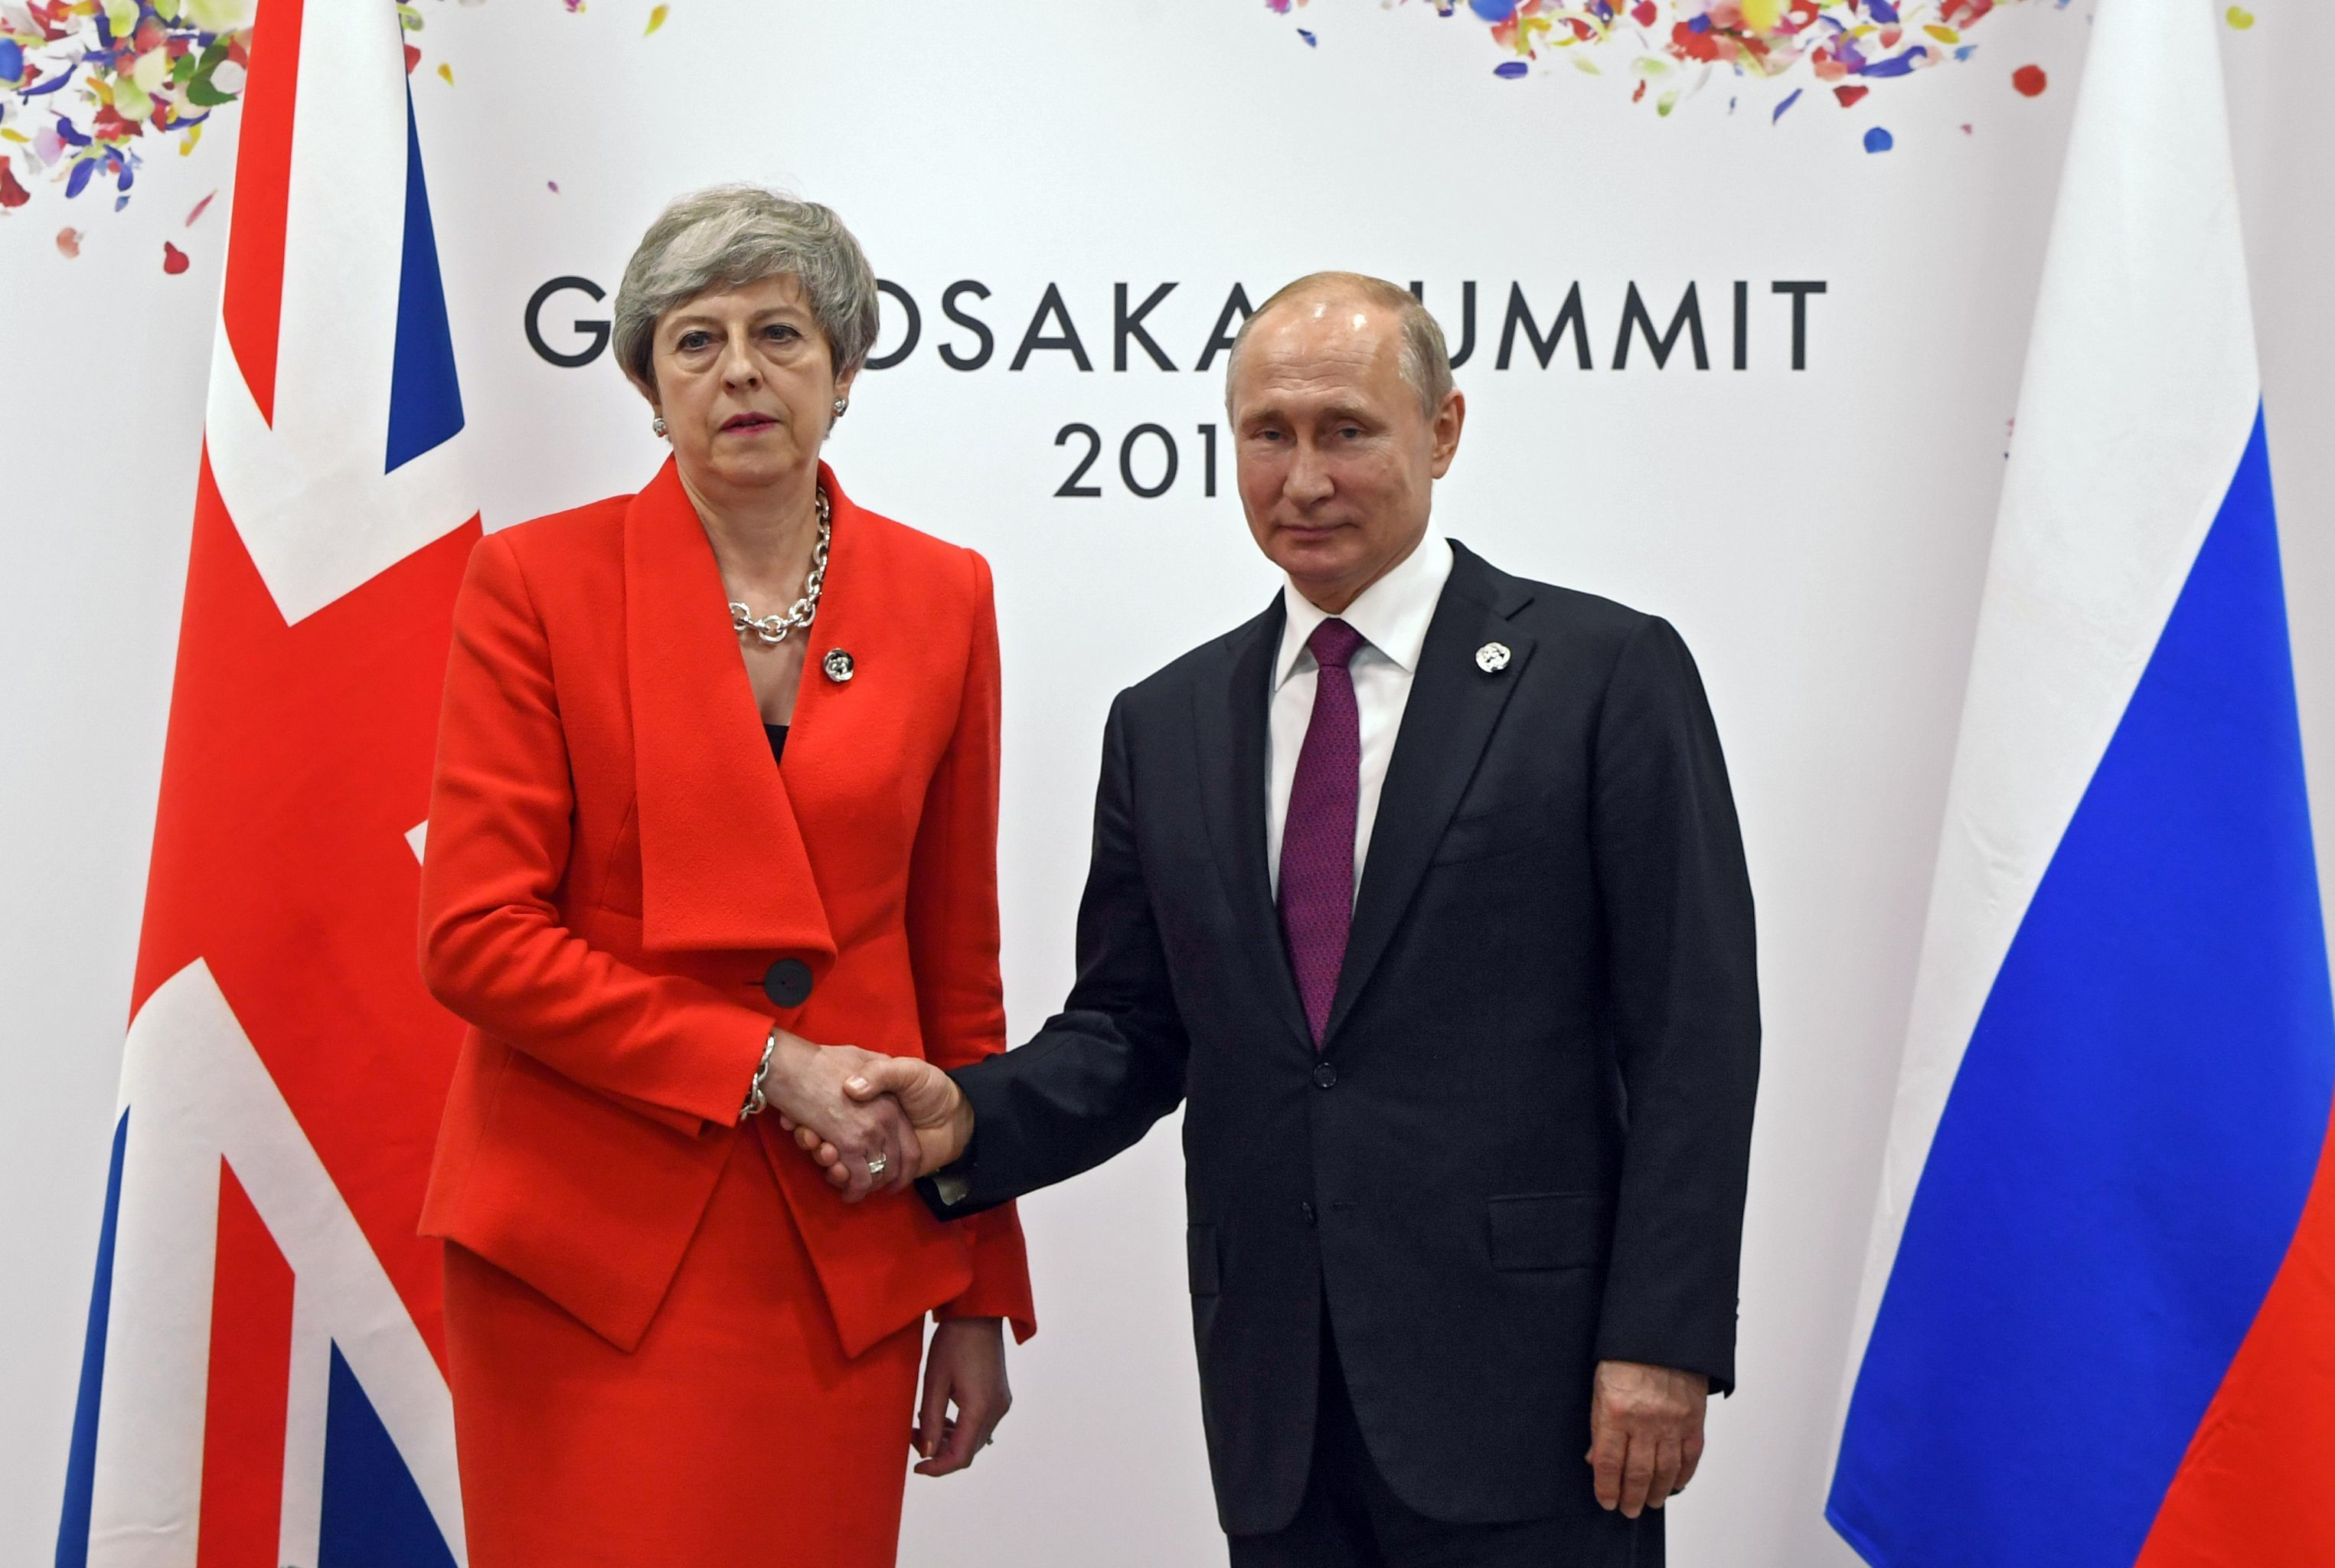 June 28, 2019. The Russian President Vladimir Putin and the prime minister of Great Britain Theresa May during the meeting on the sidelines of the summit in Osaka